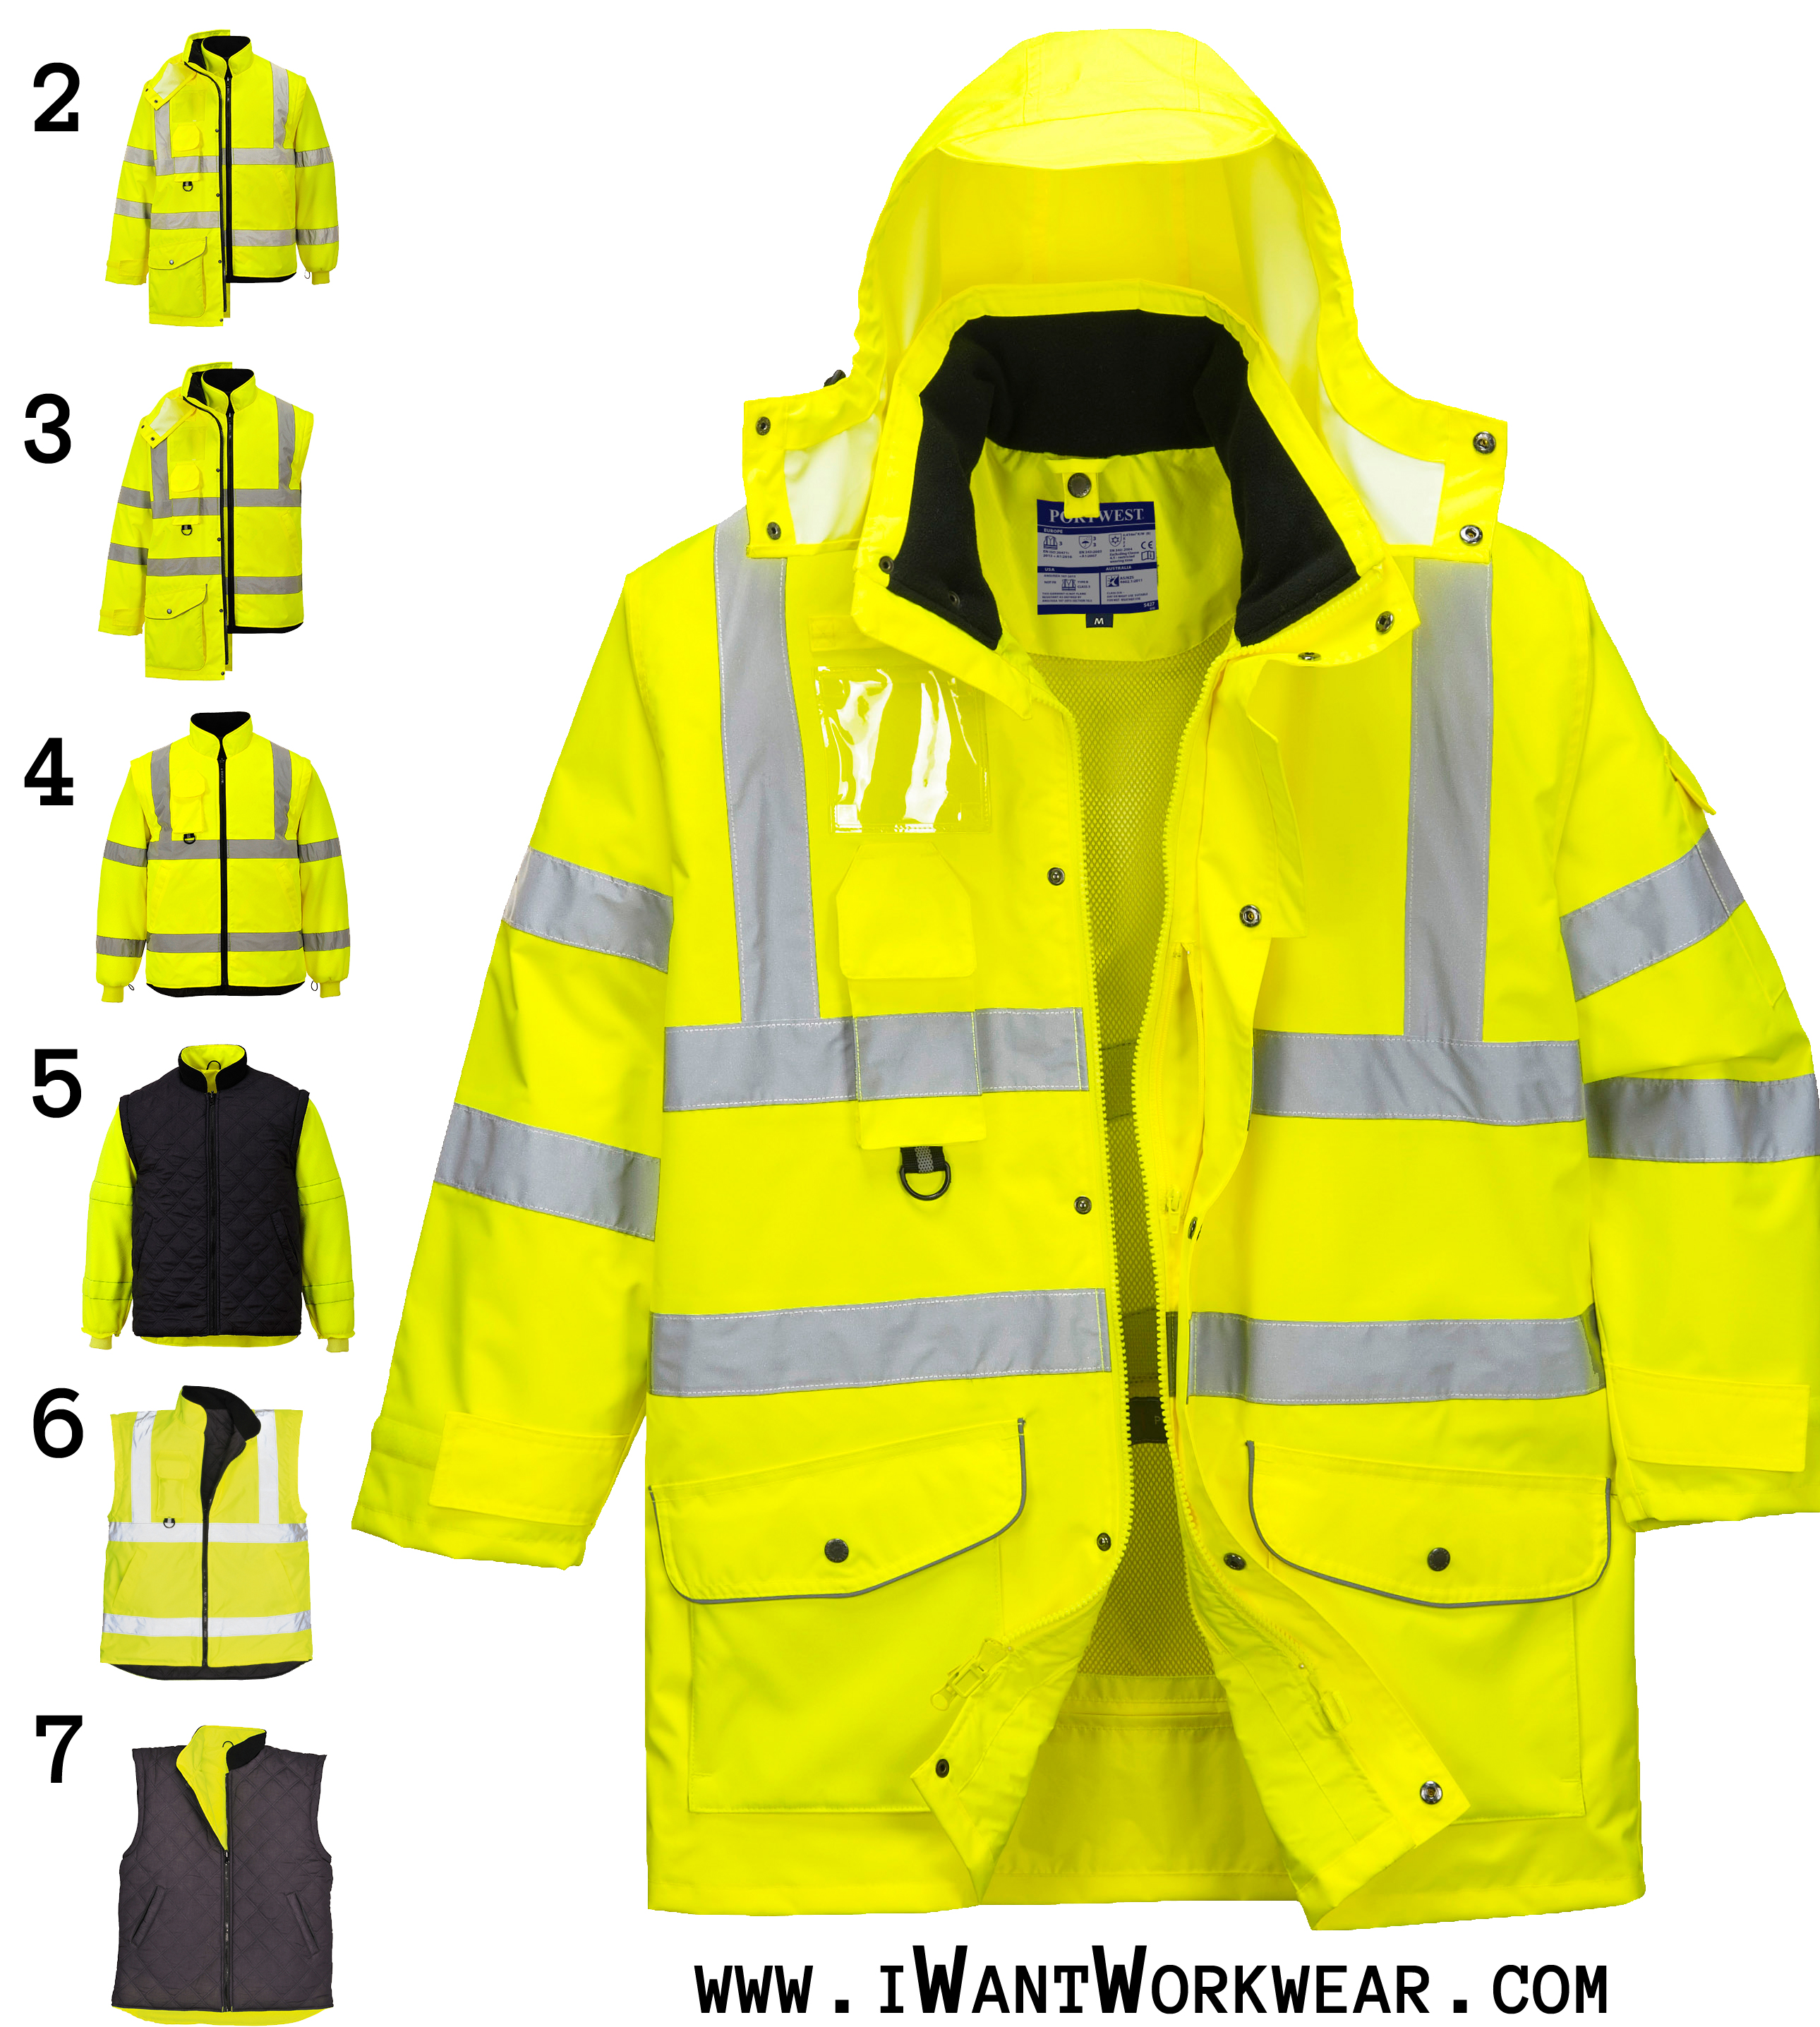 Portwest US427 High Visibility 7-in-1 Traffic Jacket b06524d56e82